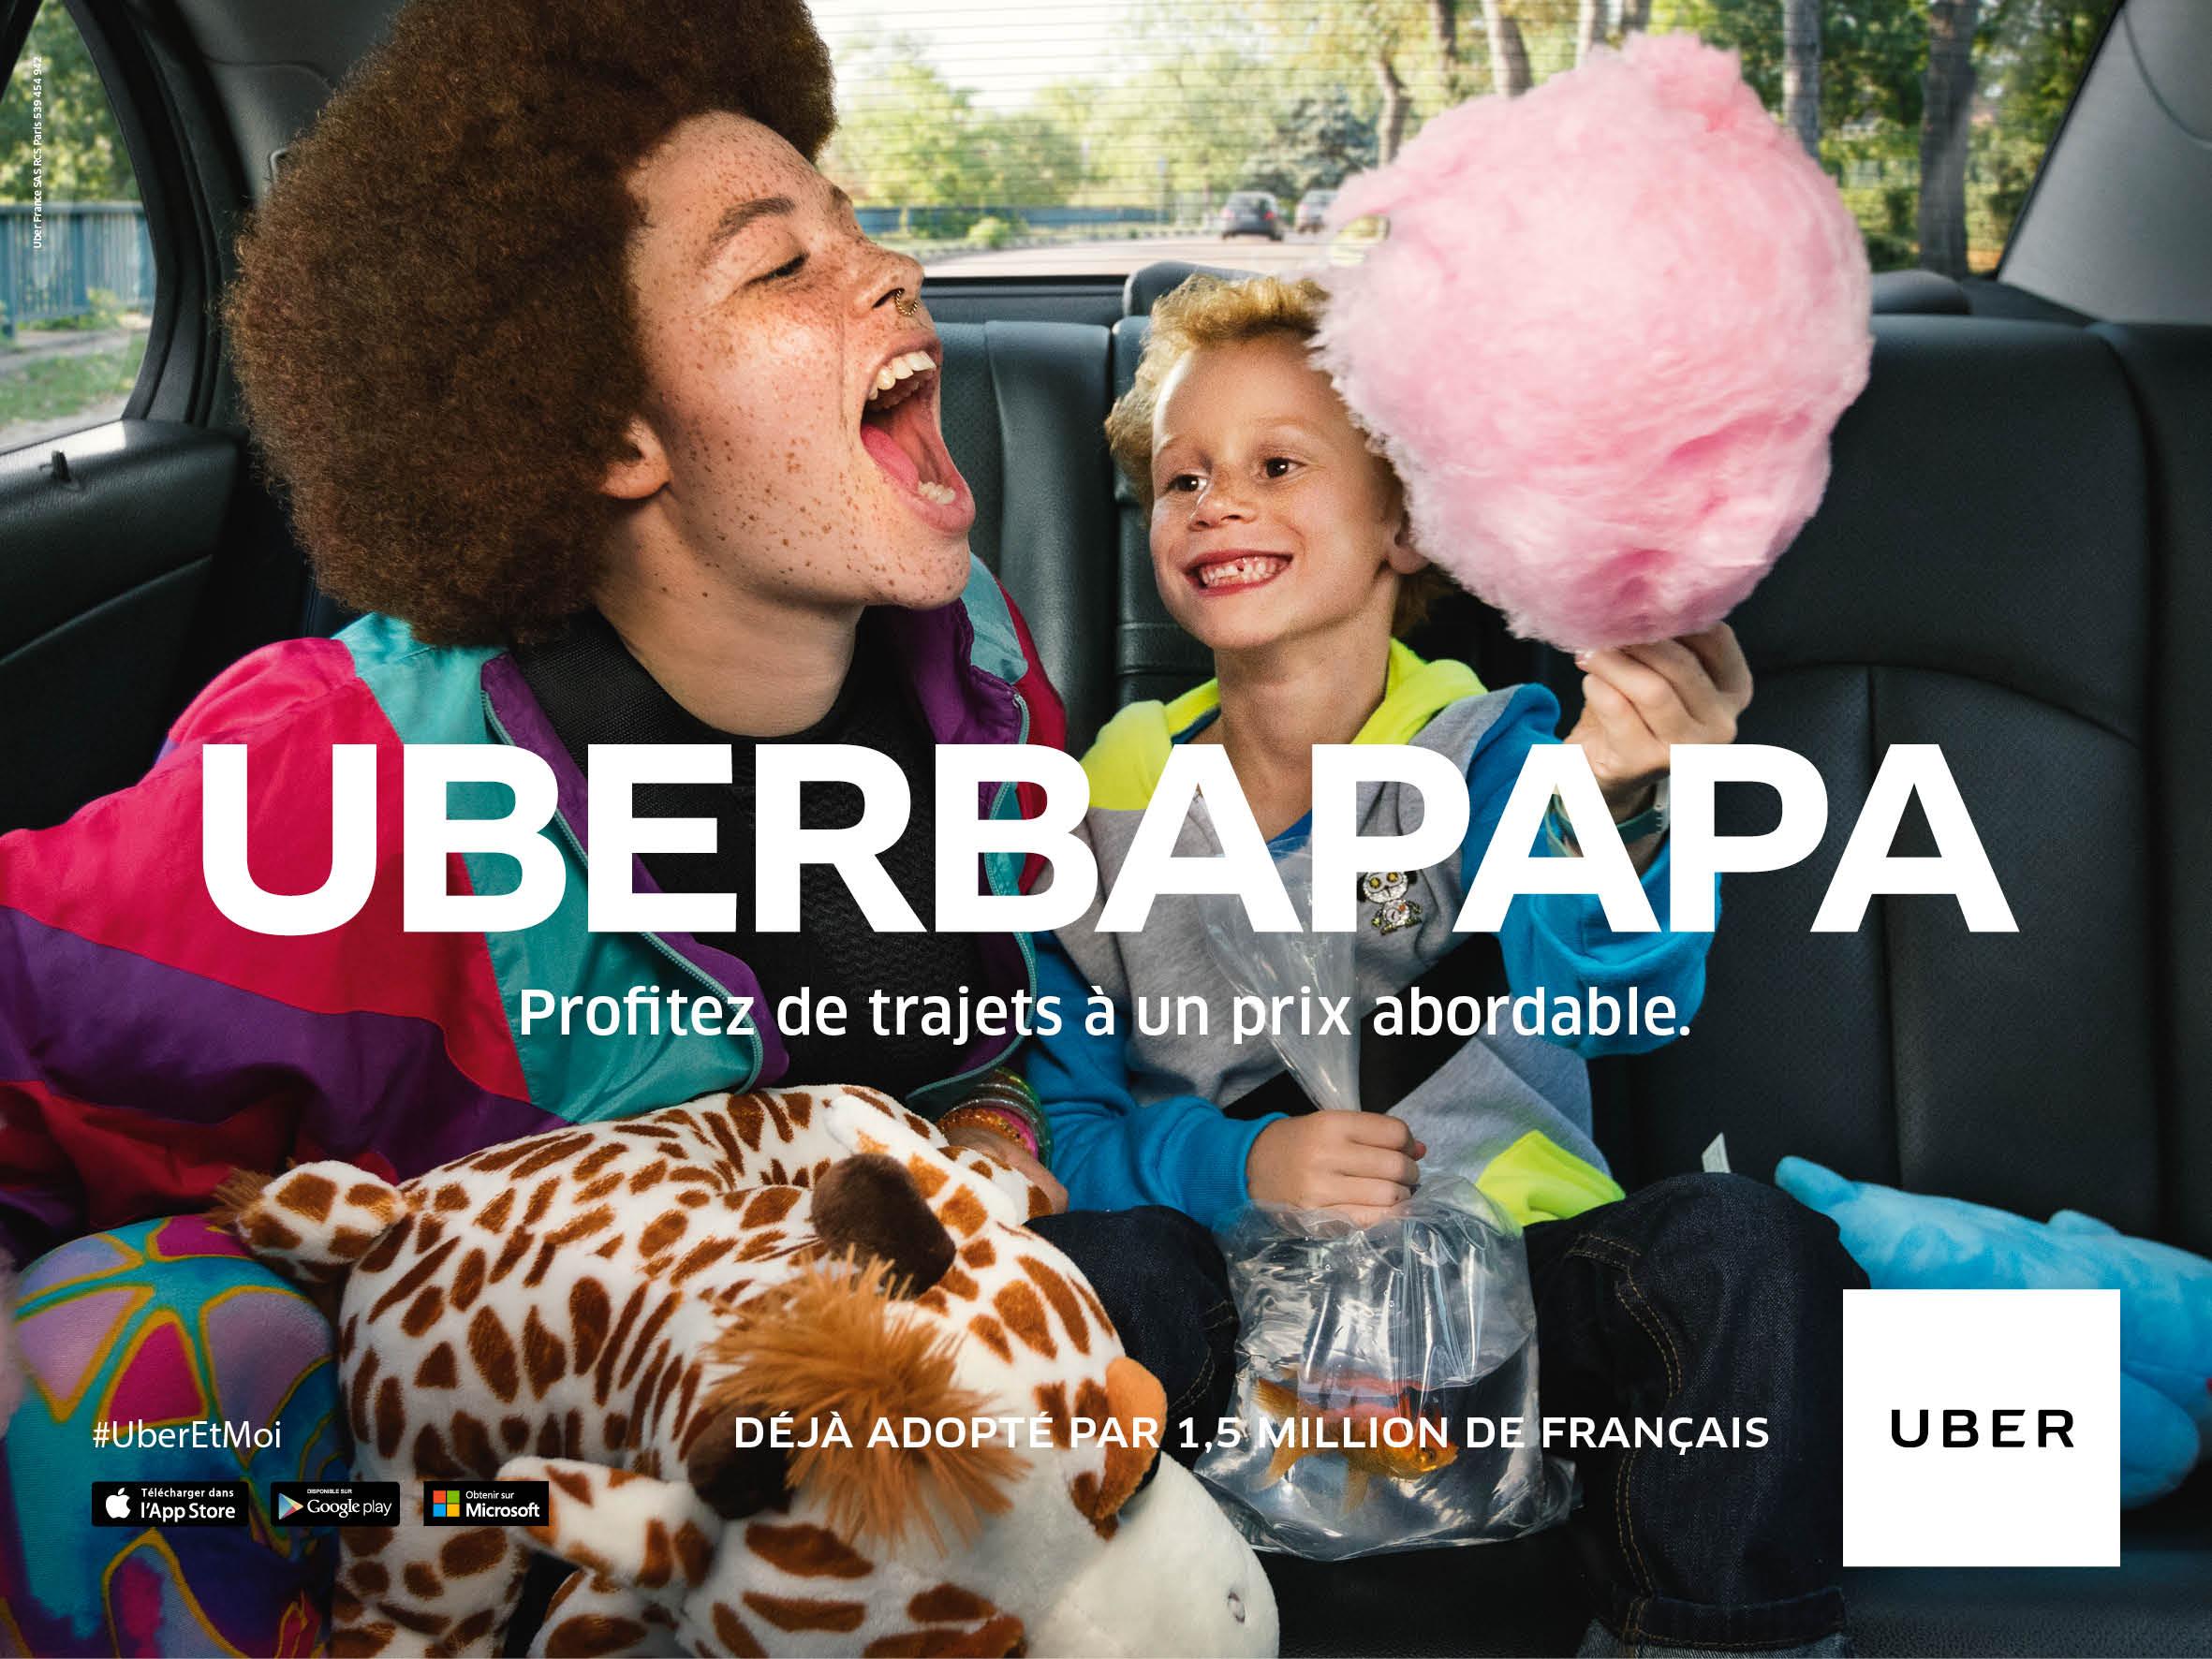 uber-france-publicite-marketing-application-utilisateurs-passagers-mars-2016-agence-marcel-publicis-14